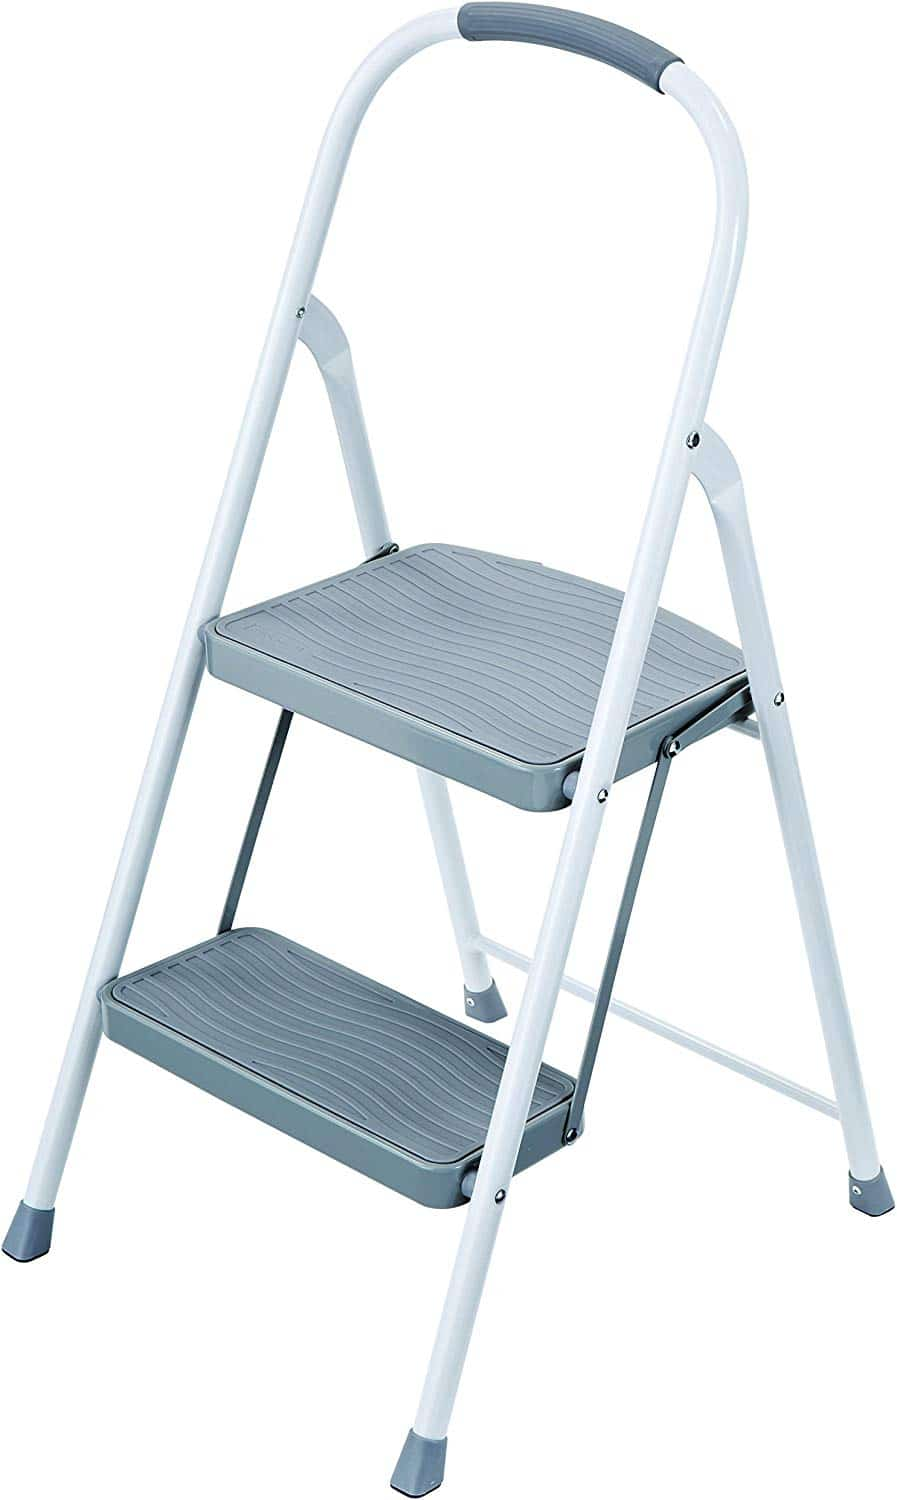 Rubbermaid RMS Step Stool